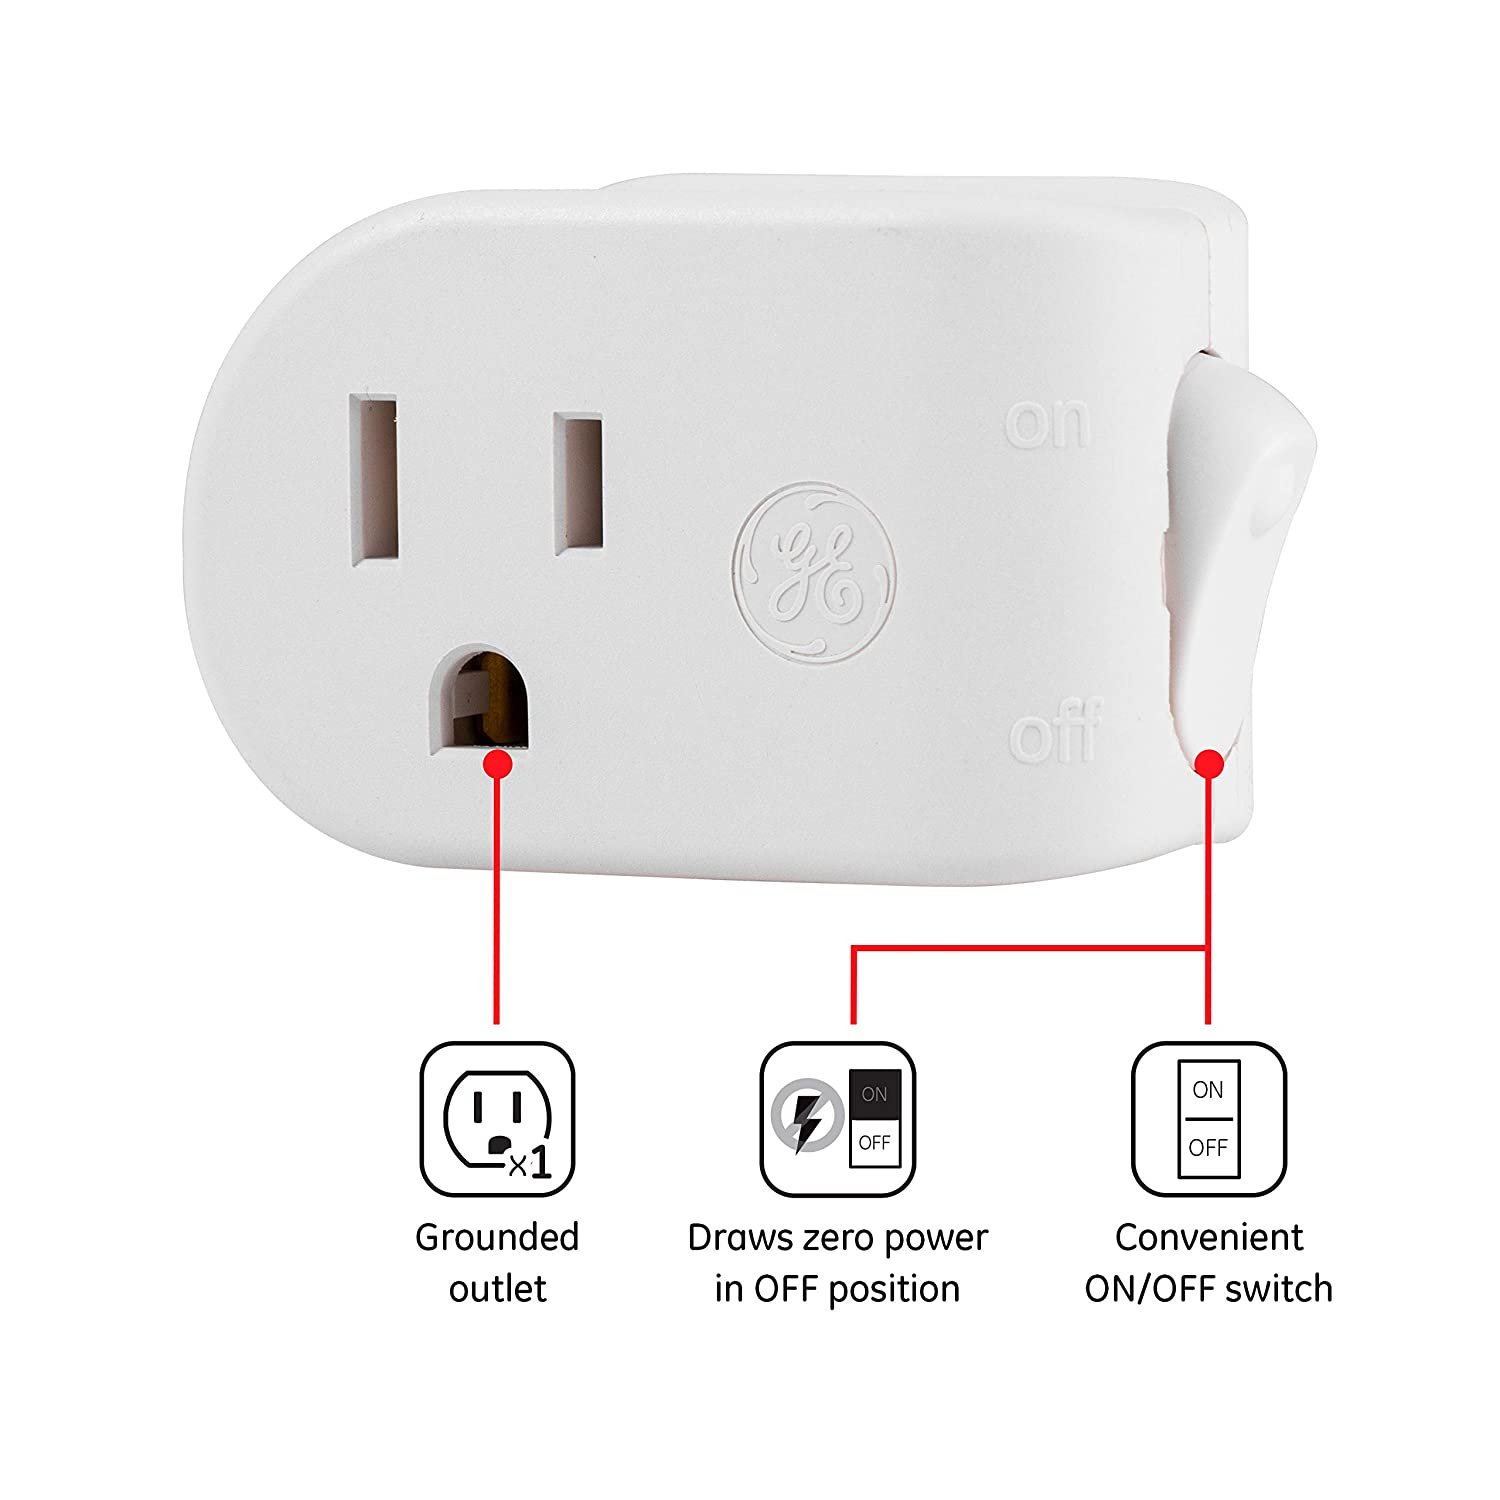 UL Listed Space Saving Design Energy Efficient 120VAC 1800W 25511 GE Grounded On//Off Power Switch Plug-In White 15A